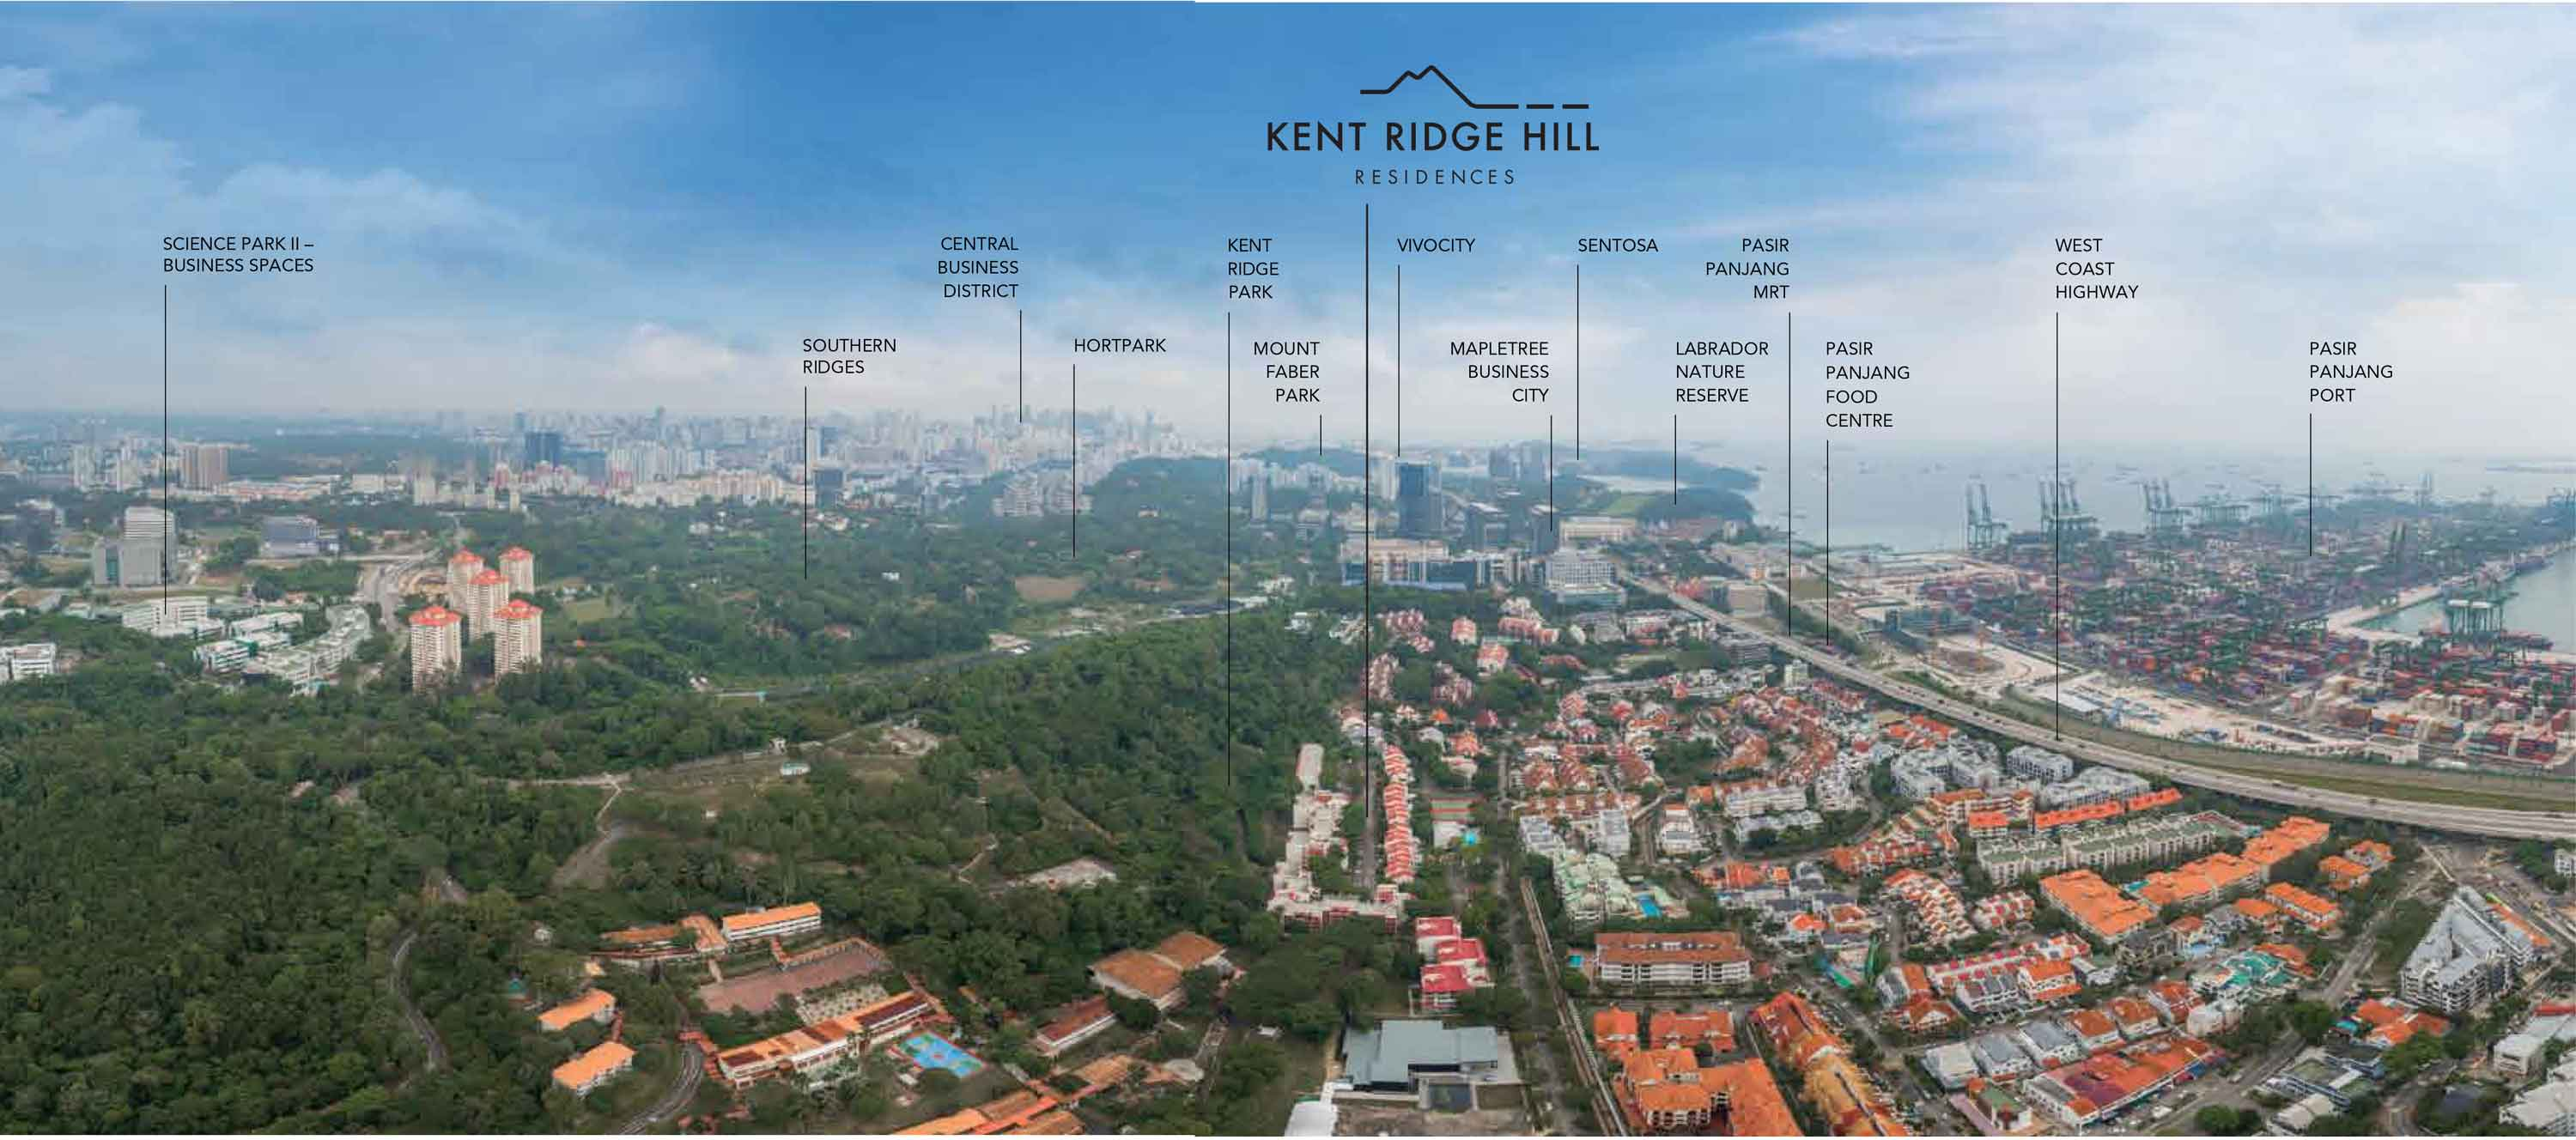 Panoramic City View of Kent Ridge Hill Residences